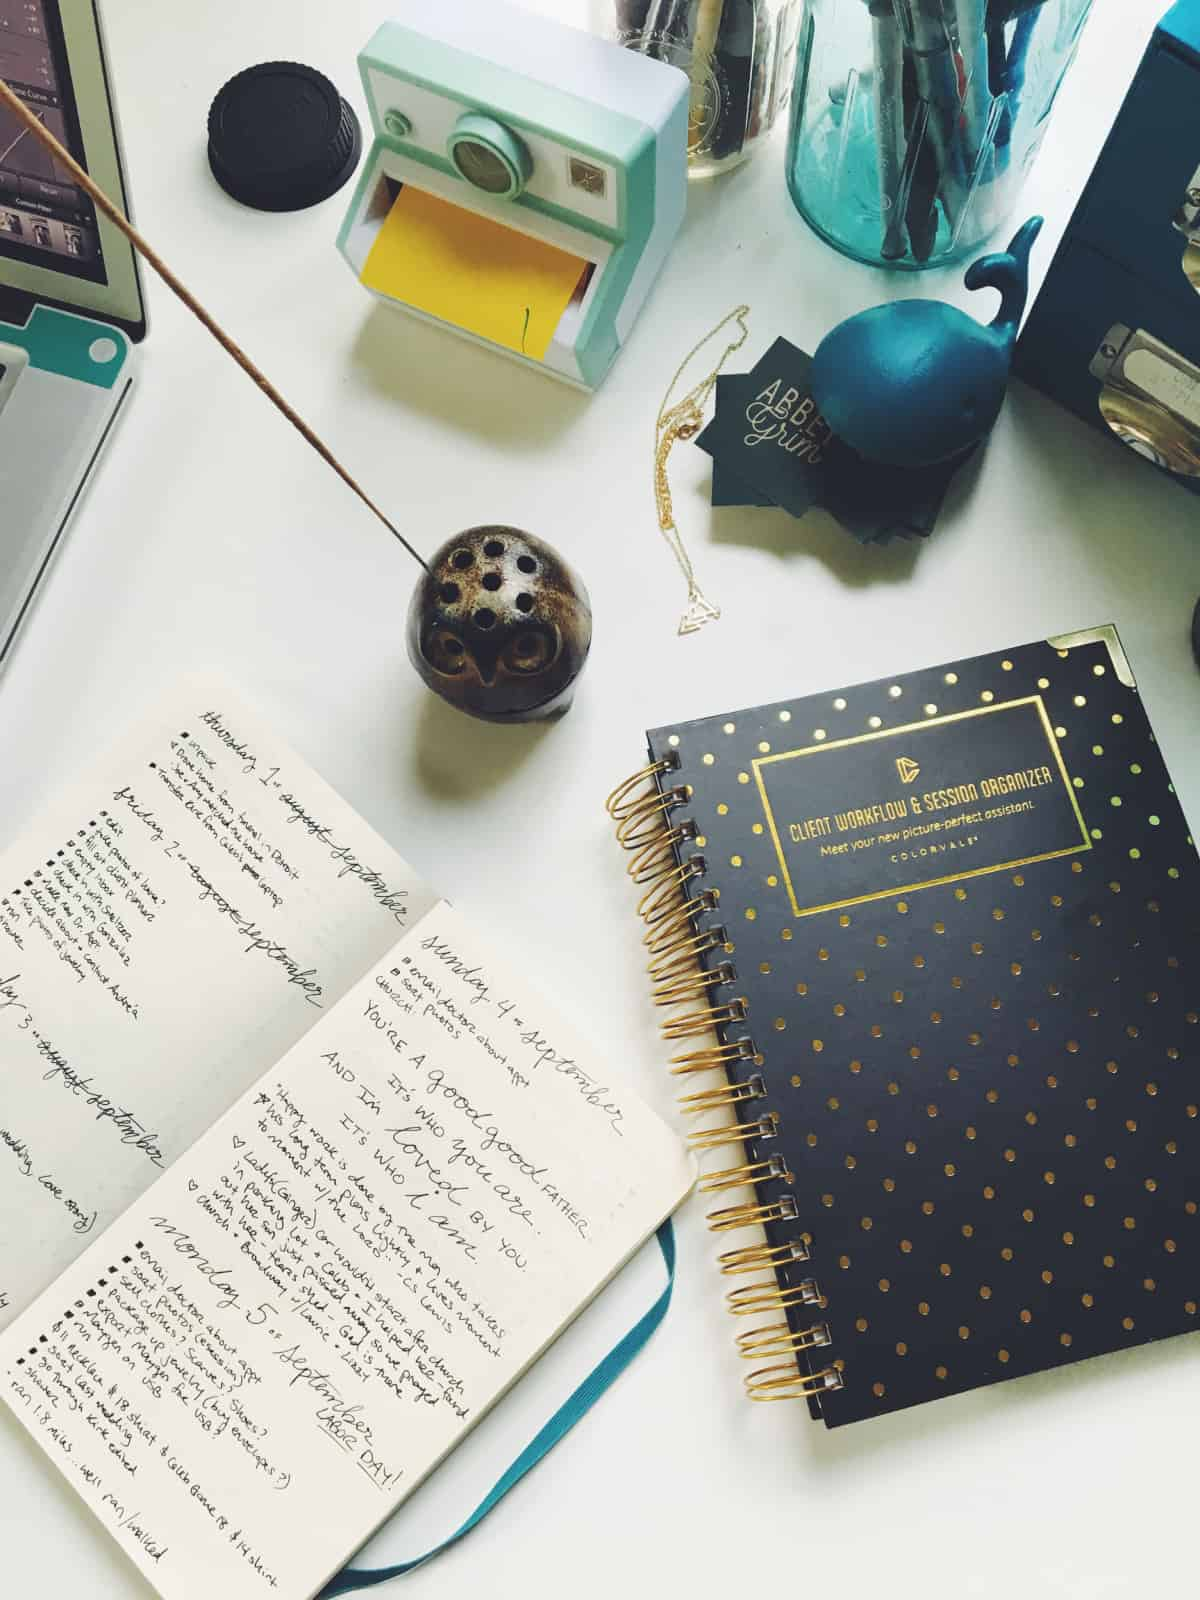 A photo of someone's desk, complete with an organizer and a bullet journal.